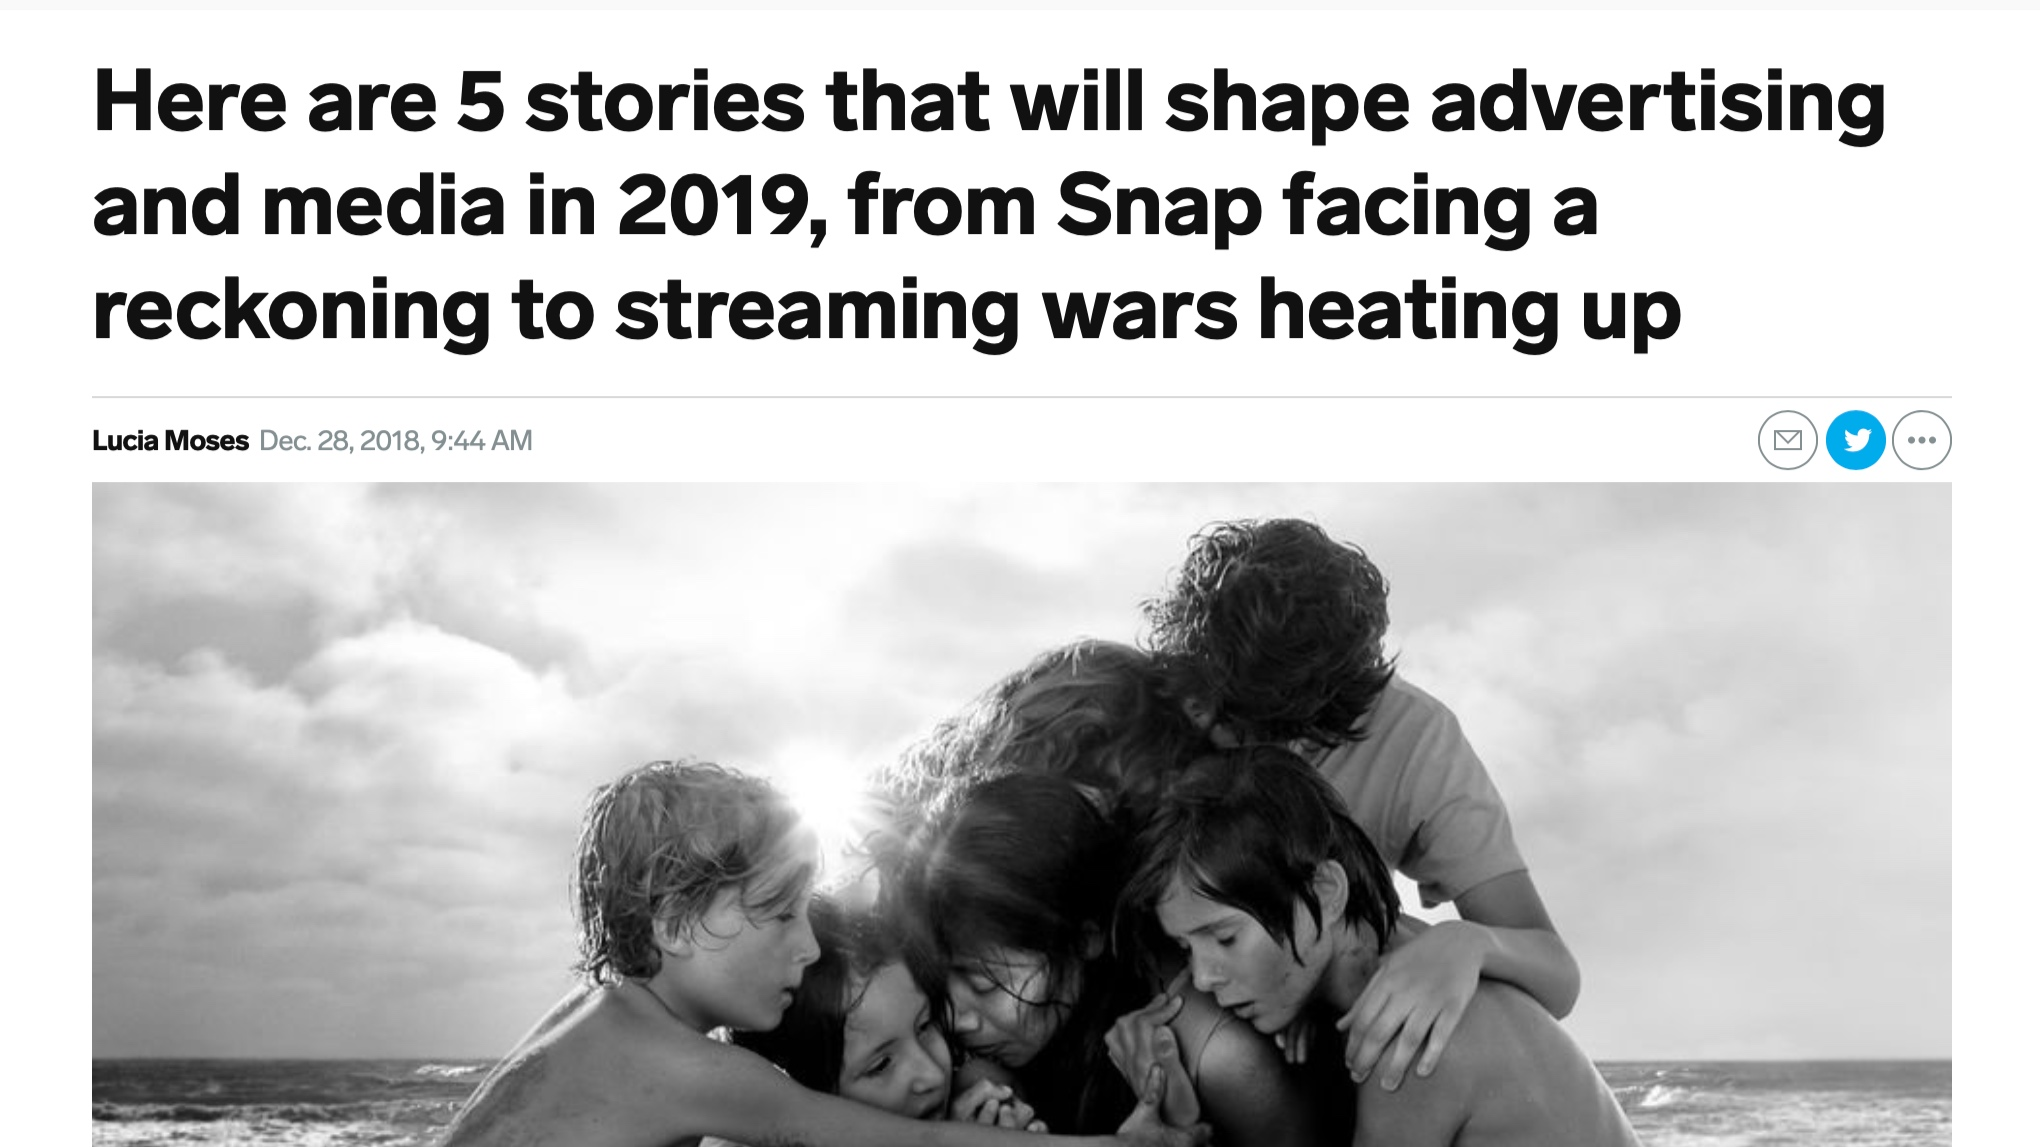 Business Insider - Here are 5 stories that will shape advertising and media in 2019, from snap facing a reckoning to streaming wars heating up